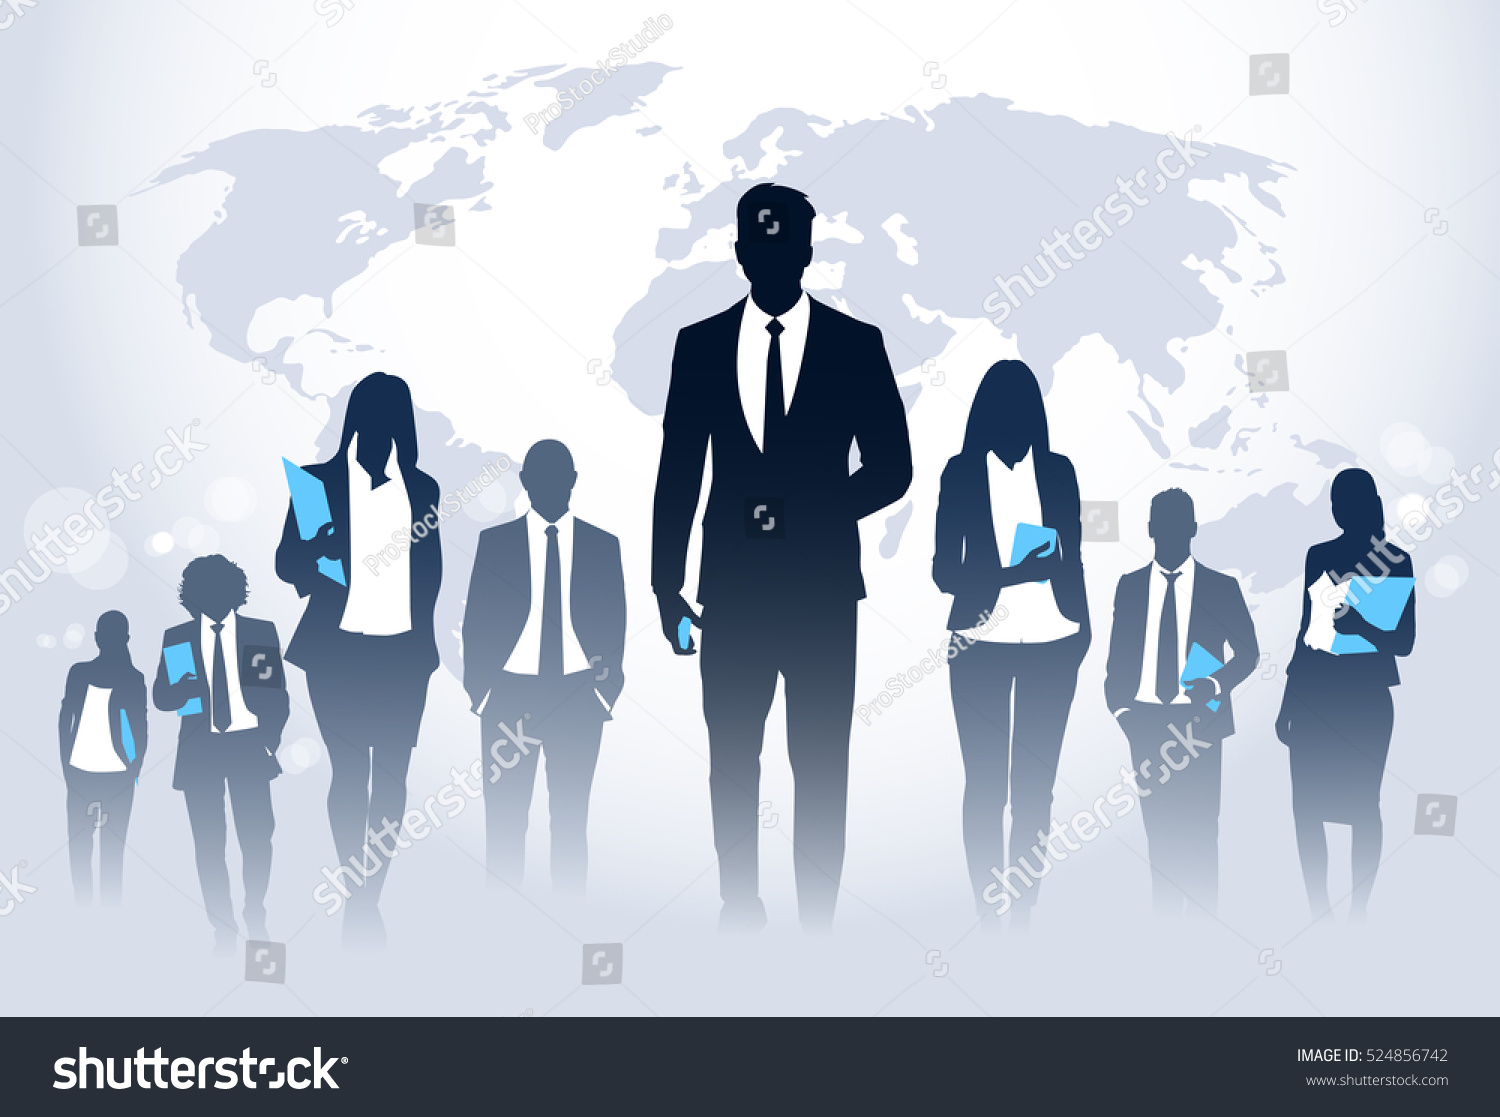 Business People Team Crowd Walk Silhouette Stock Vector 524856742 ... for Business People Silhouette Png  54lyp